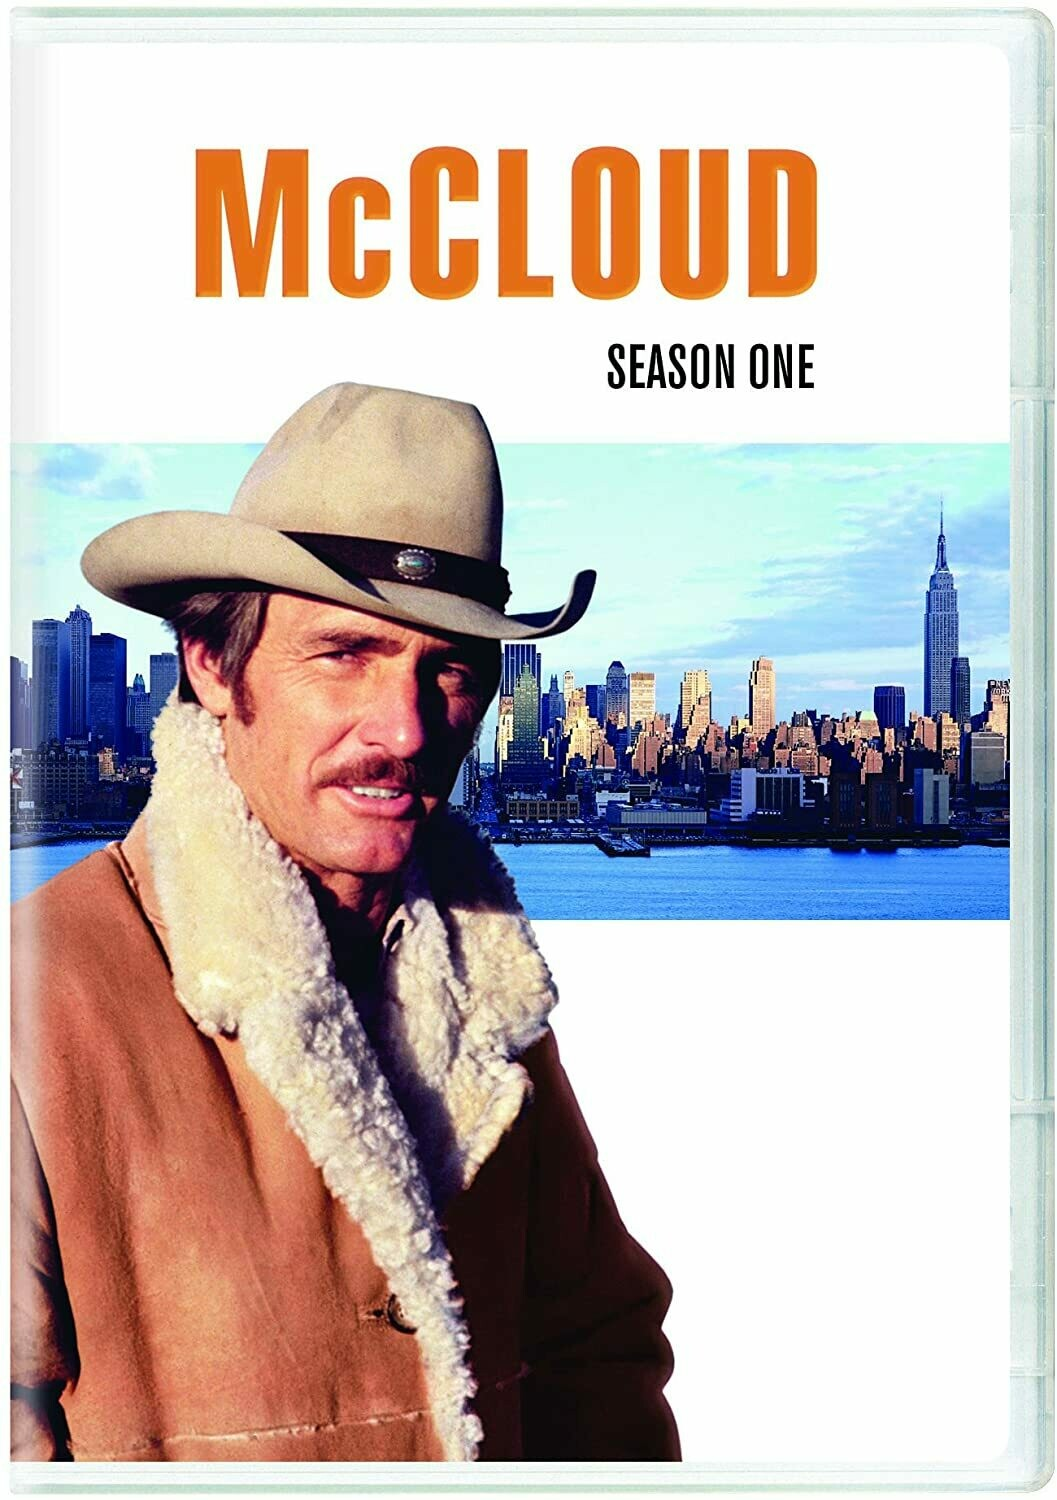 McCloud Season One (7 day rental)